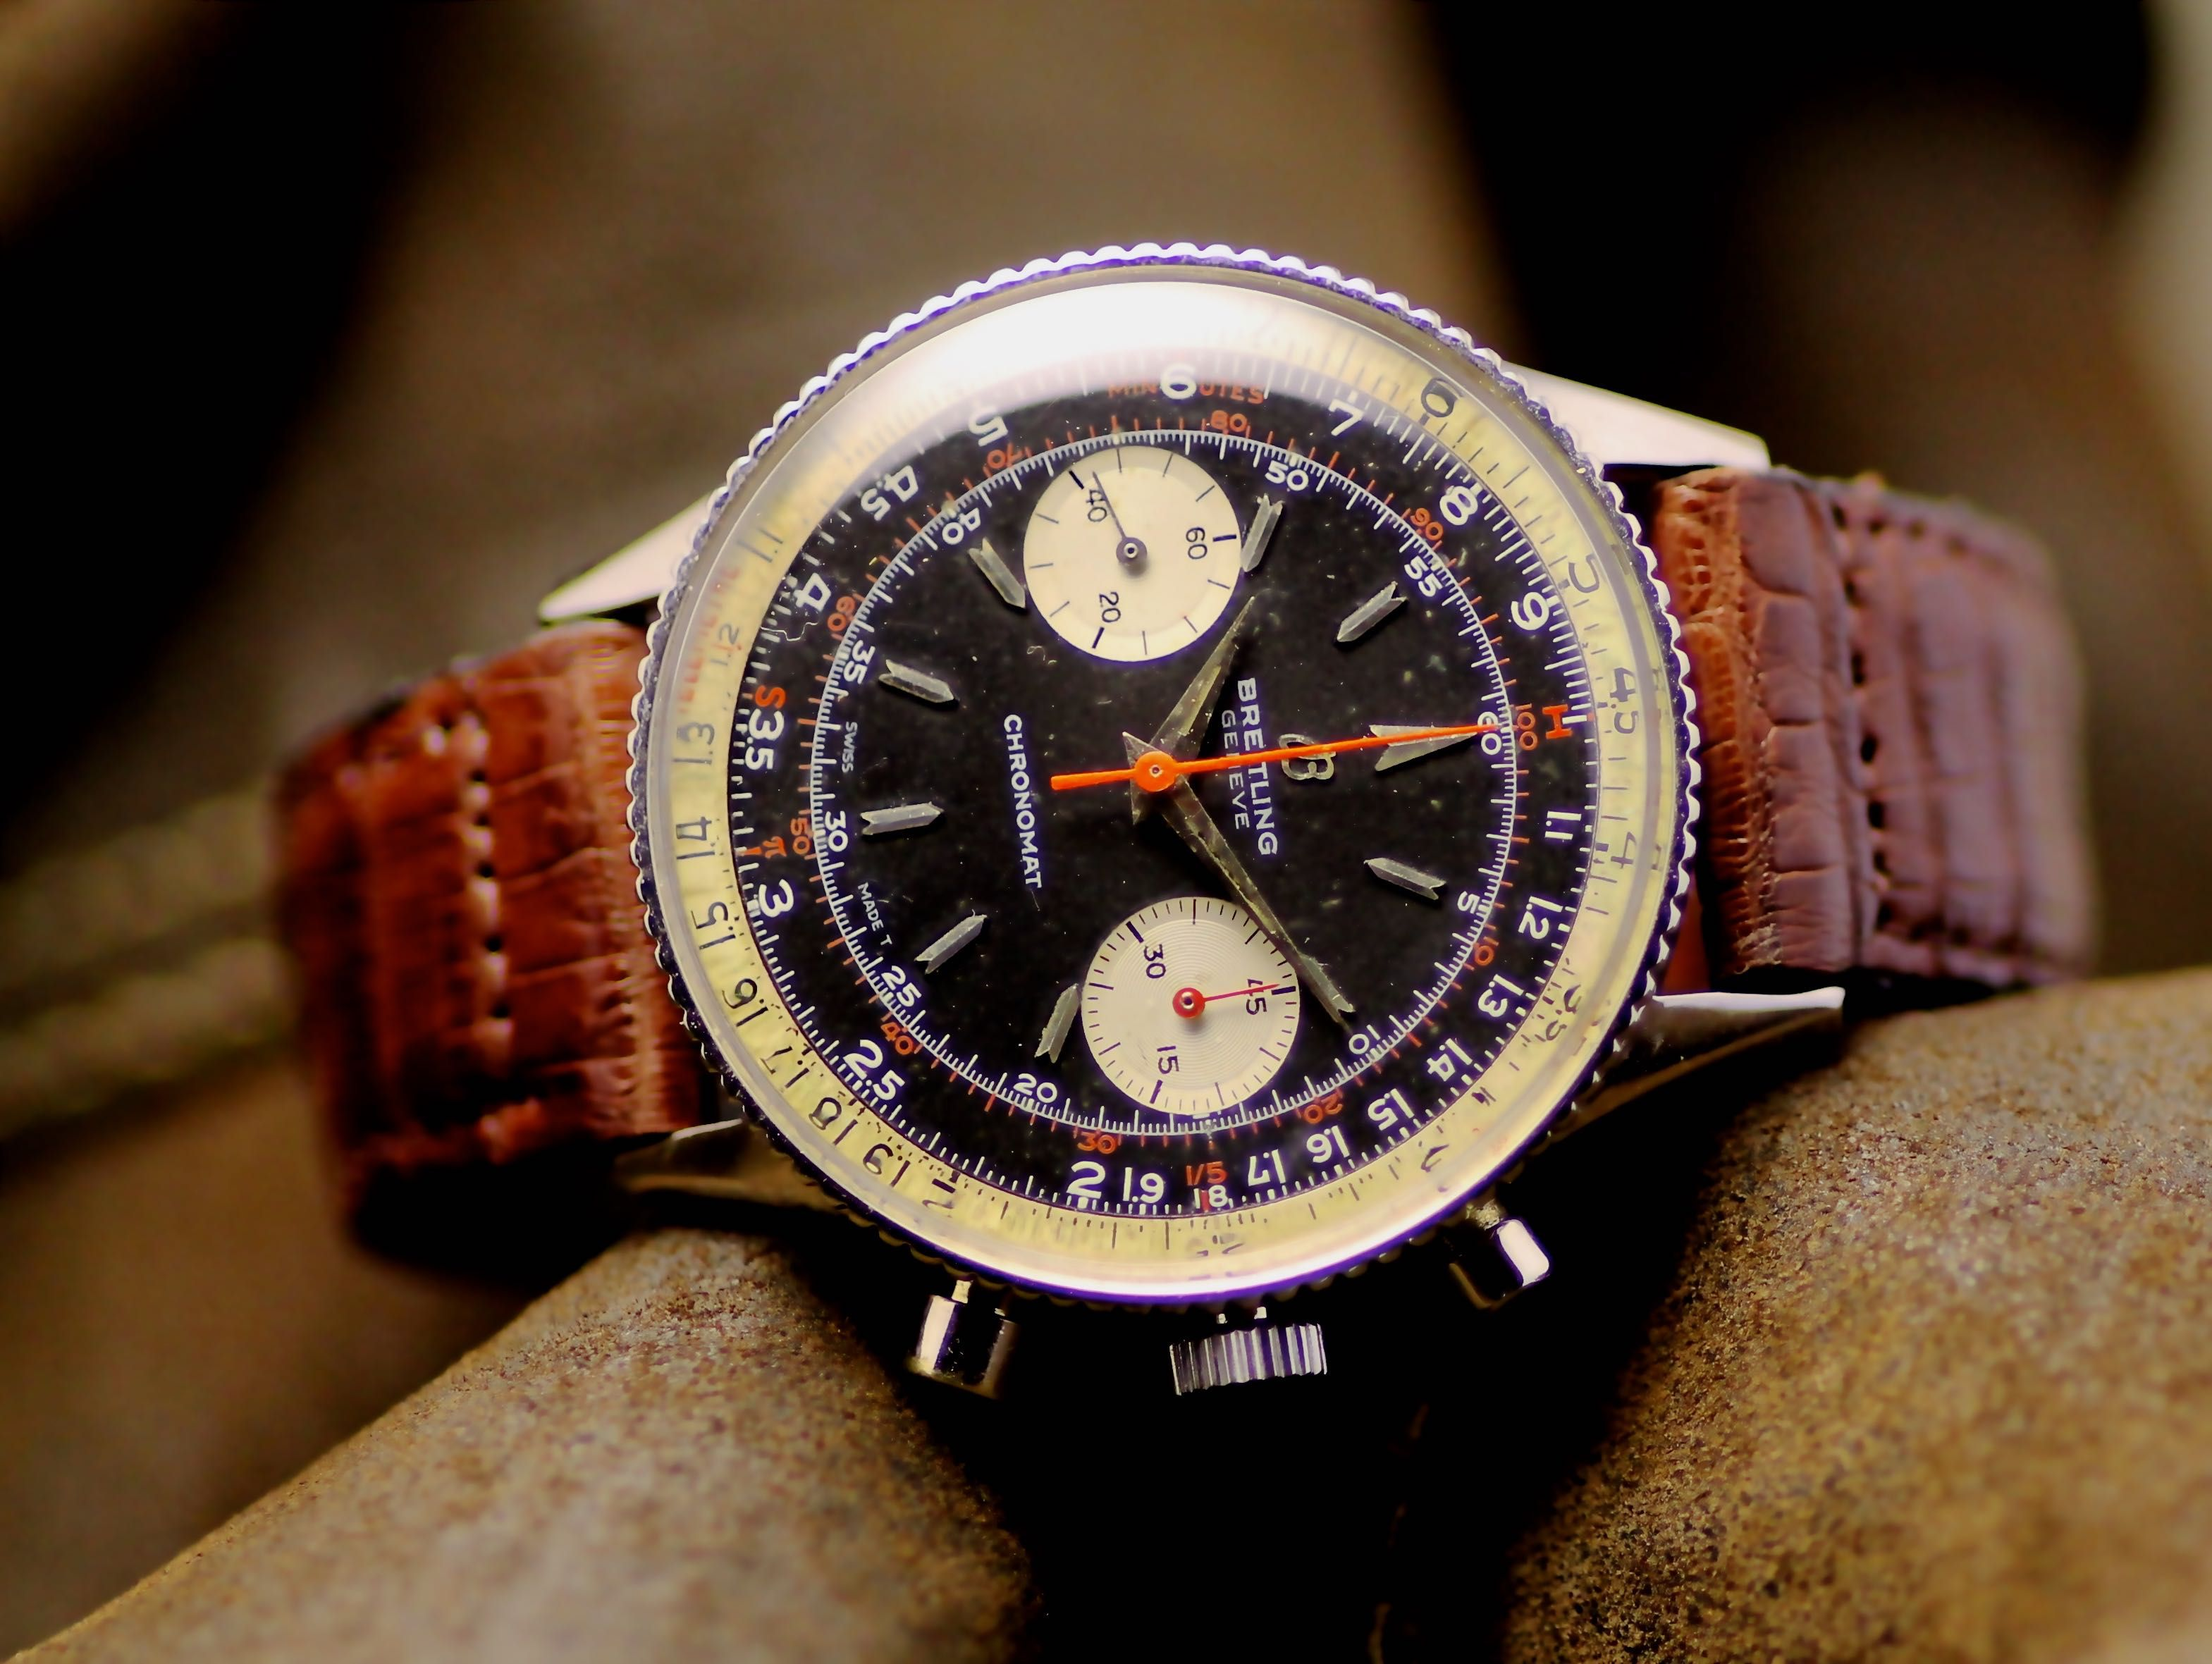 Breitling Chronomat ref 808 | Vintage Breitling watches for sale